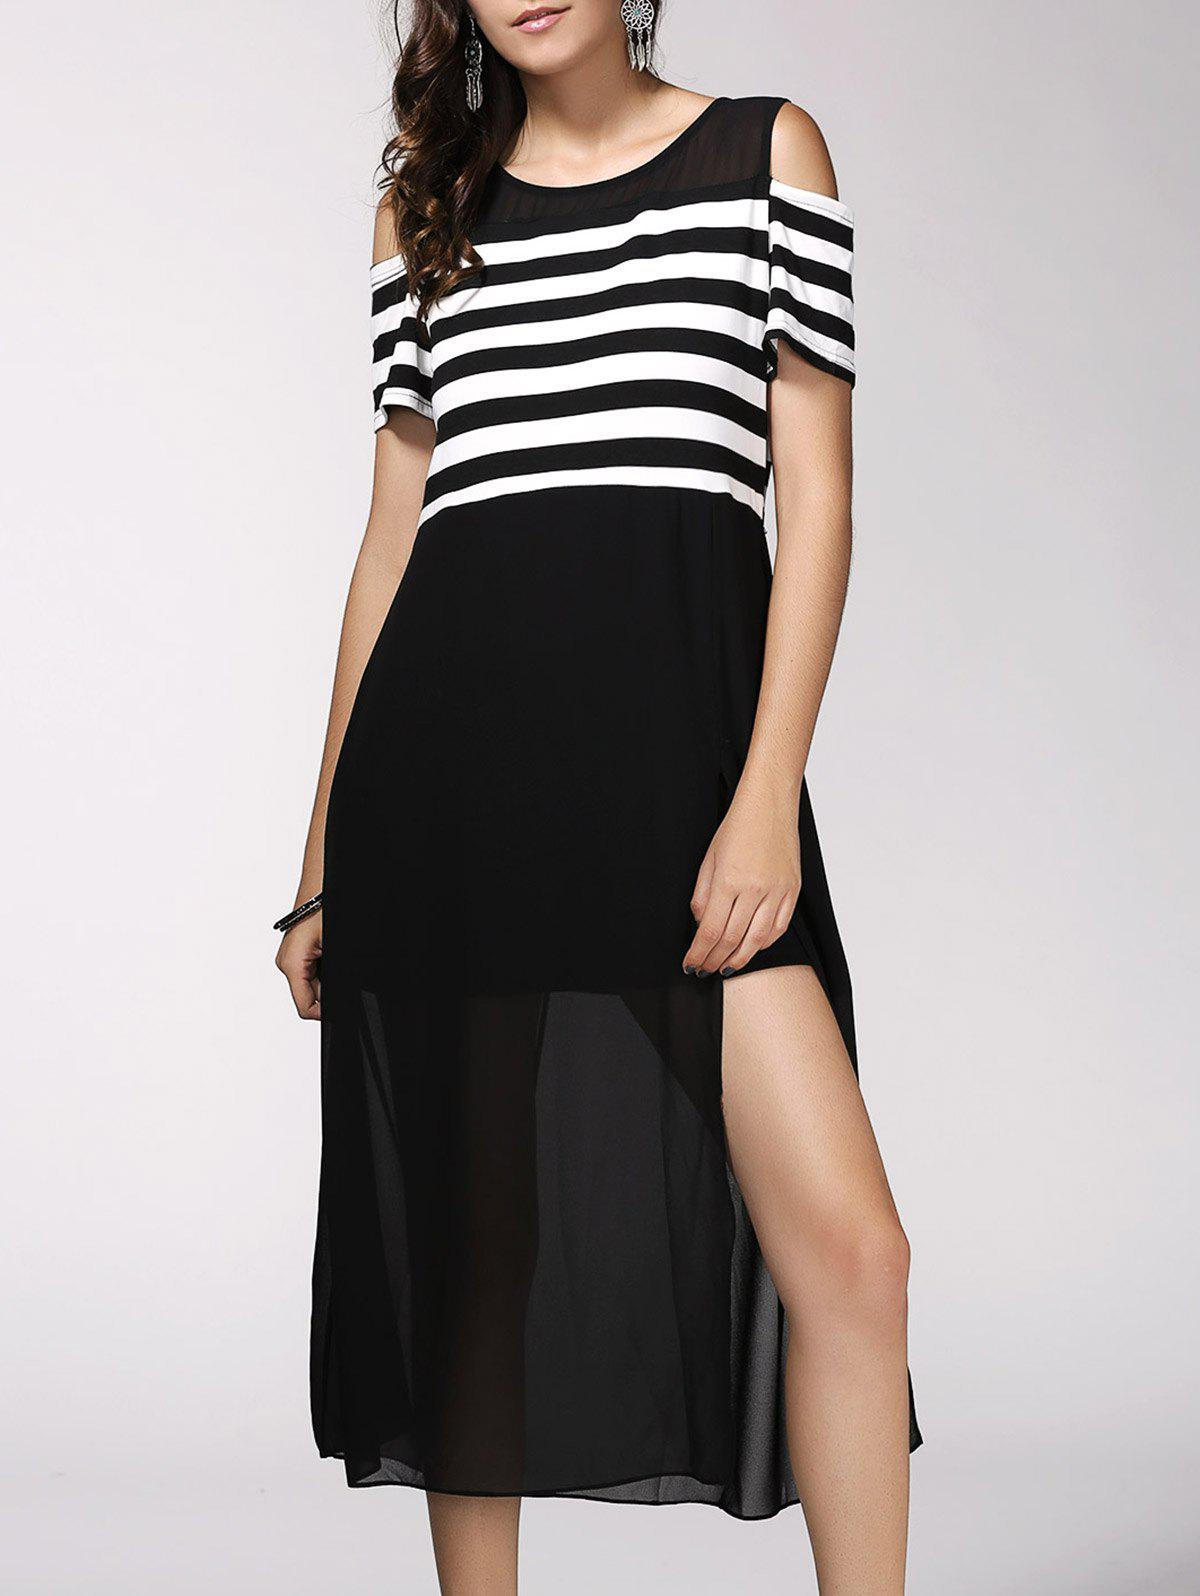 Trendy Short Sleeve Striped High Slit Hollow Out Dress For WomenWomen<br><br><br>Size: ONE SIZE(FIT SIZE XS TO M)<br>Color: BLACK